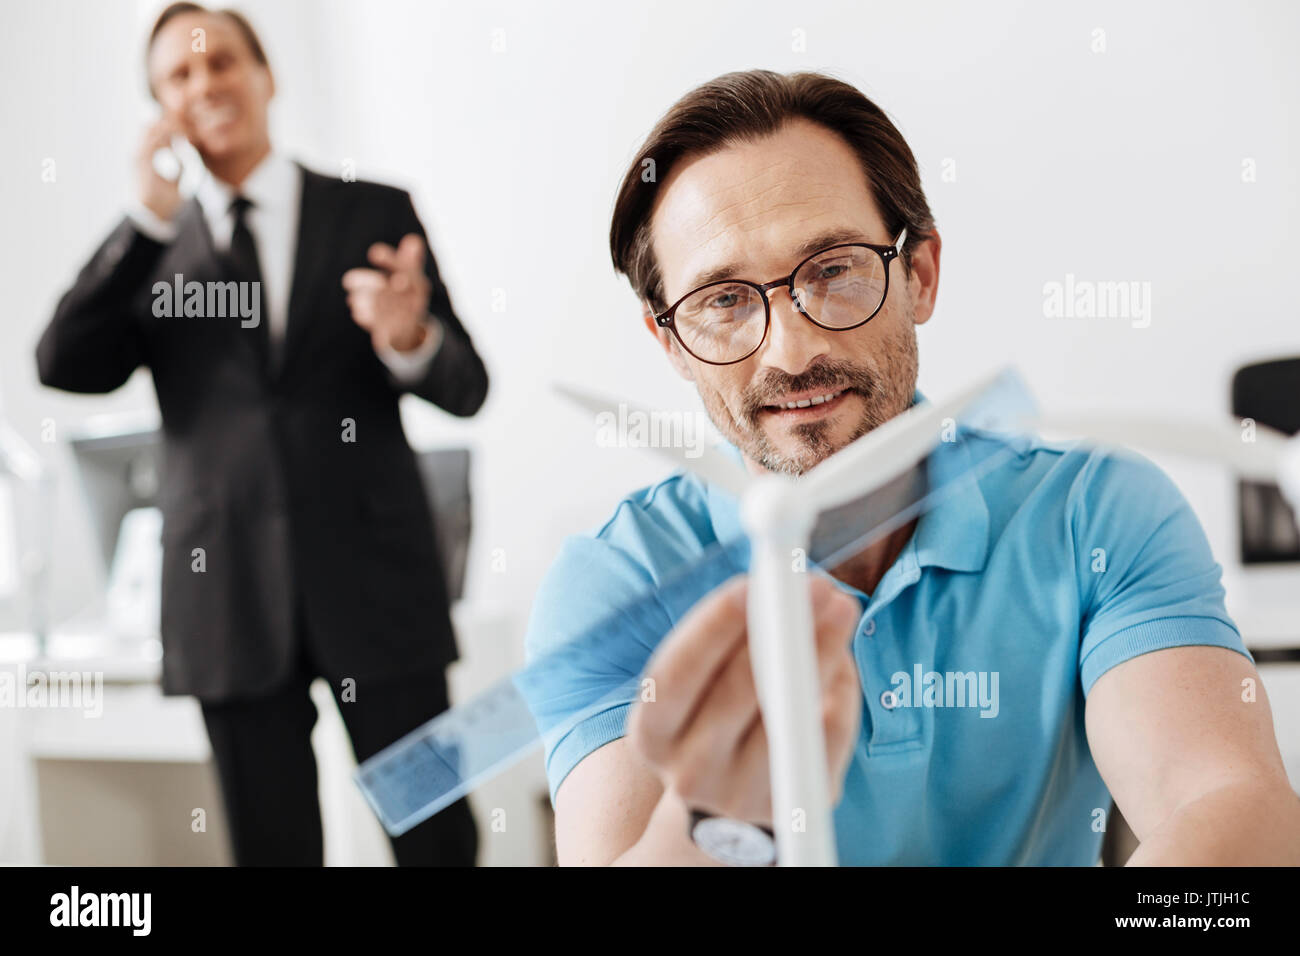 Engineer measuring wind turbine sail length with ruler - Stock Image